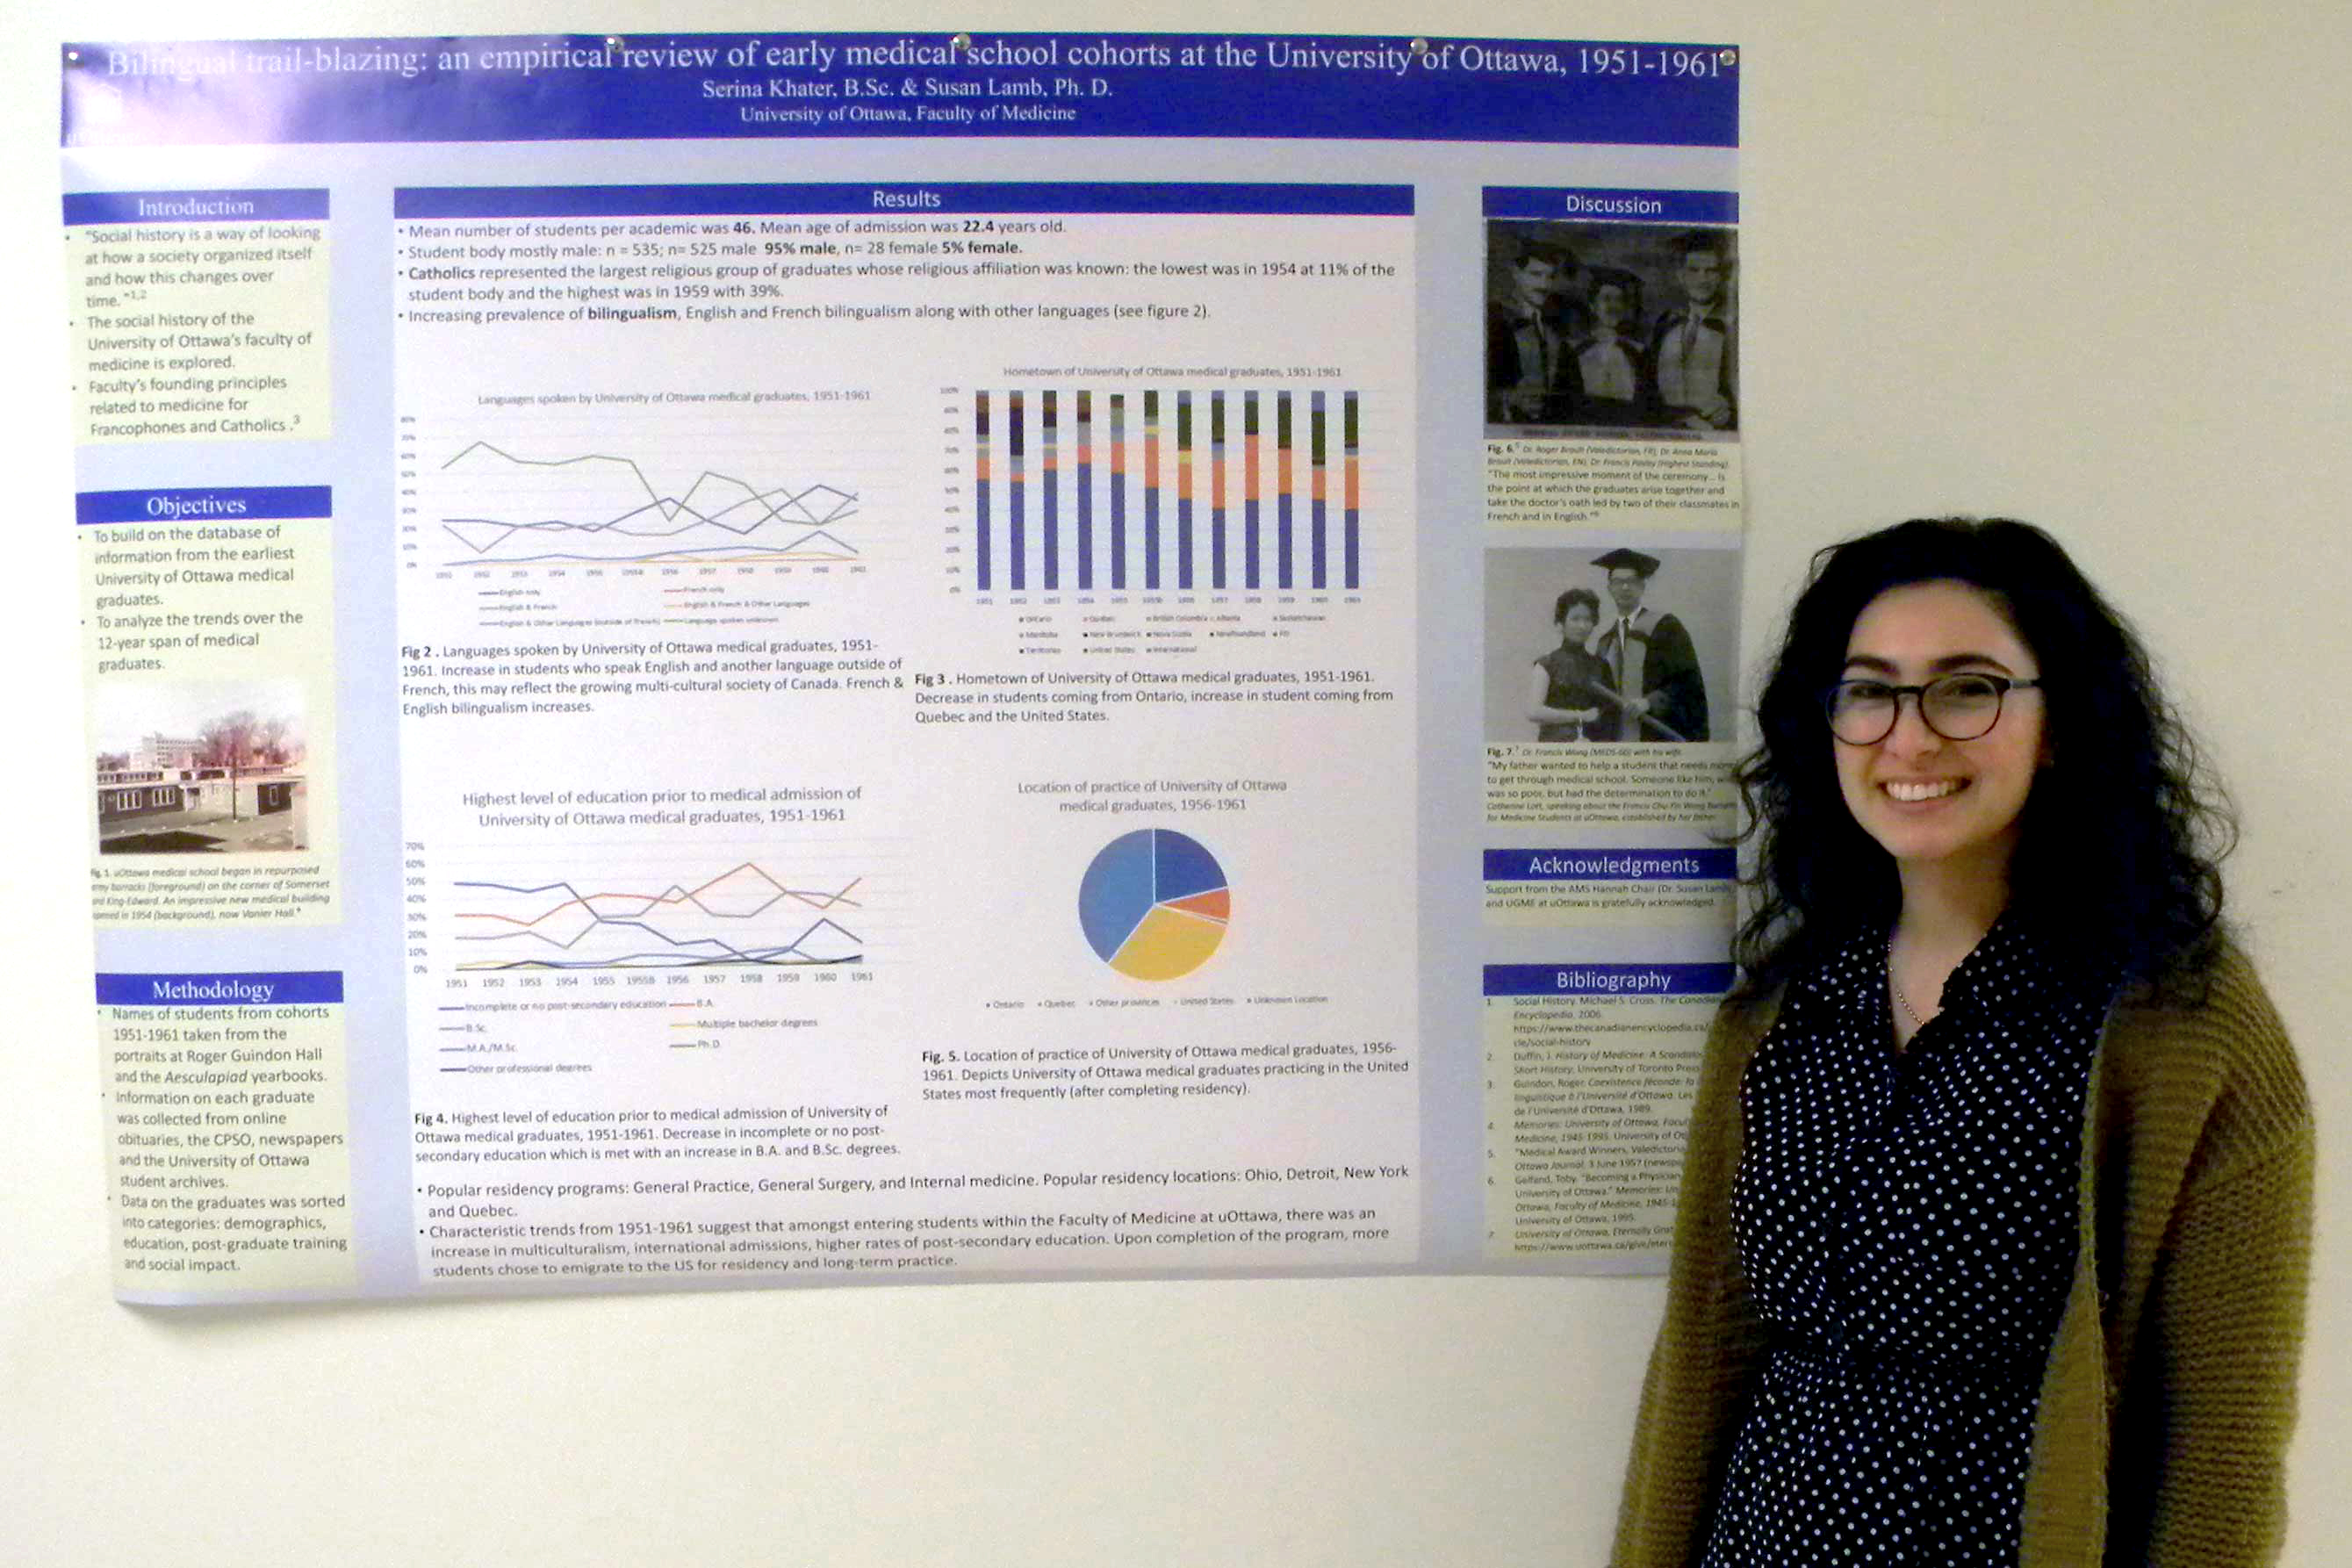 Photo of Serina Khater standing in front of her poster.